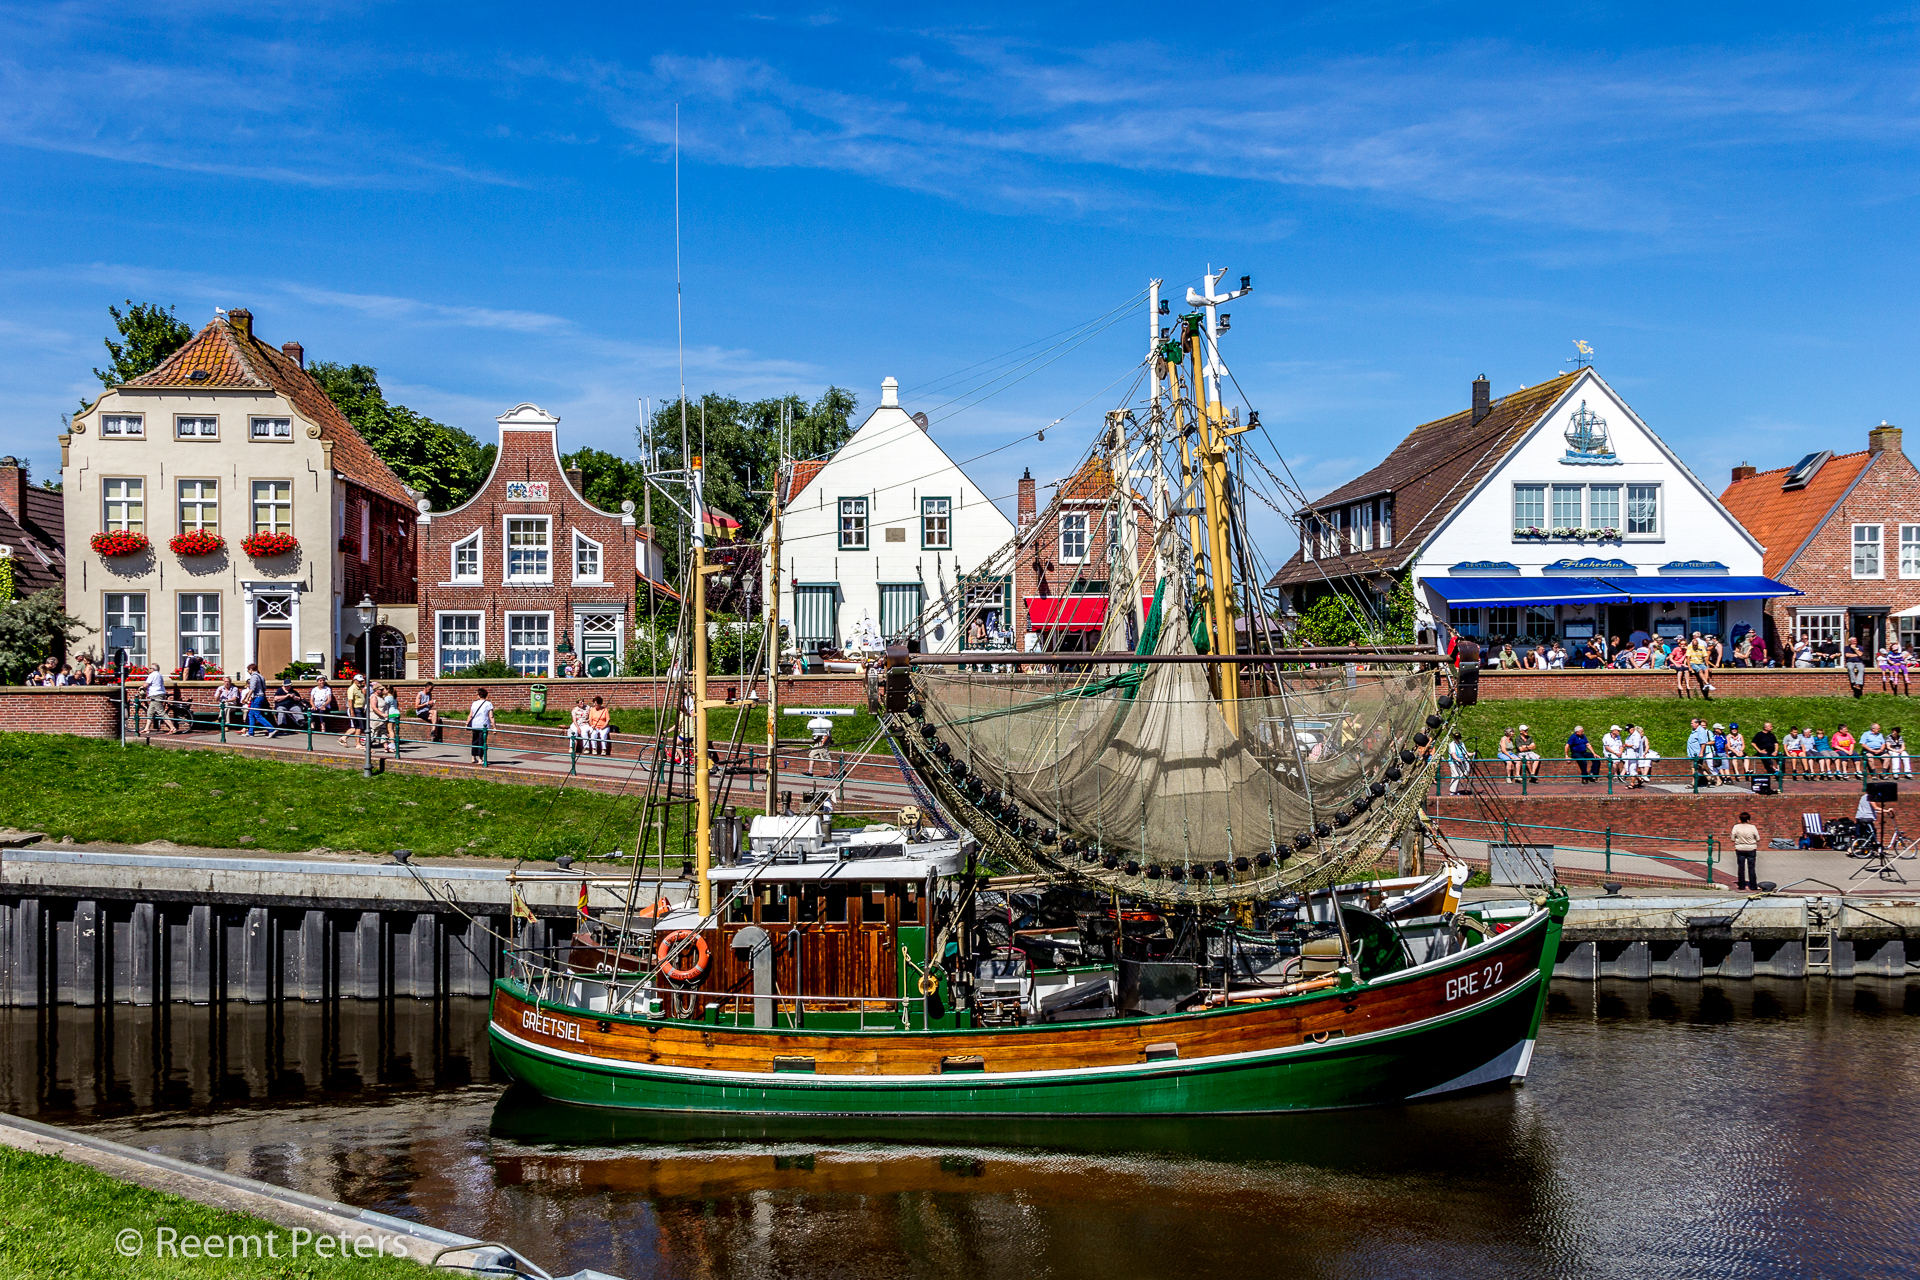 Greetsiel, Germany